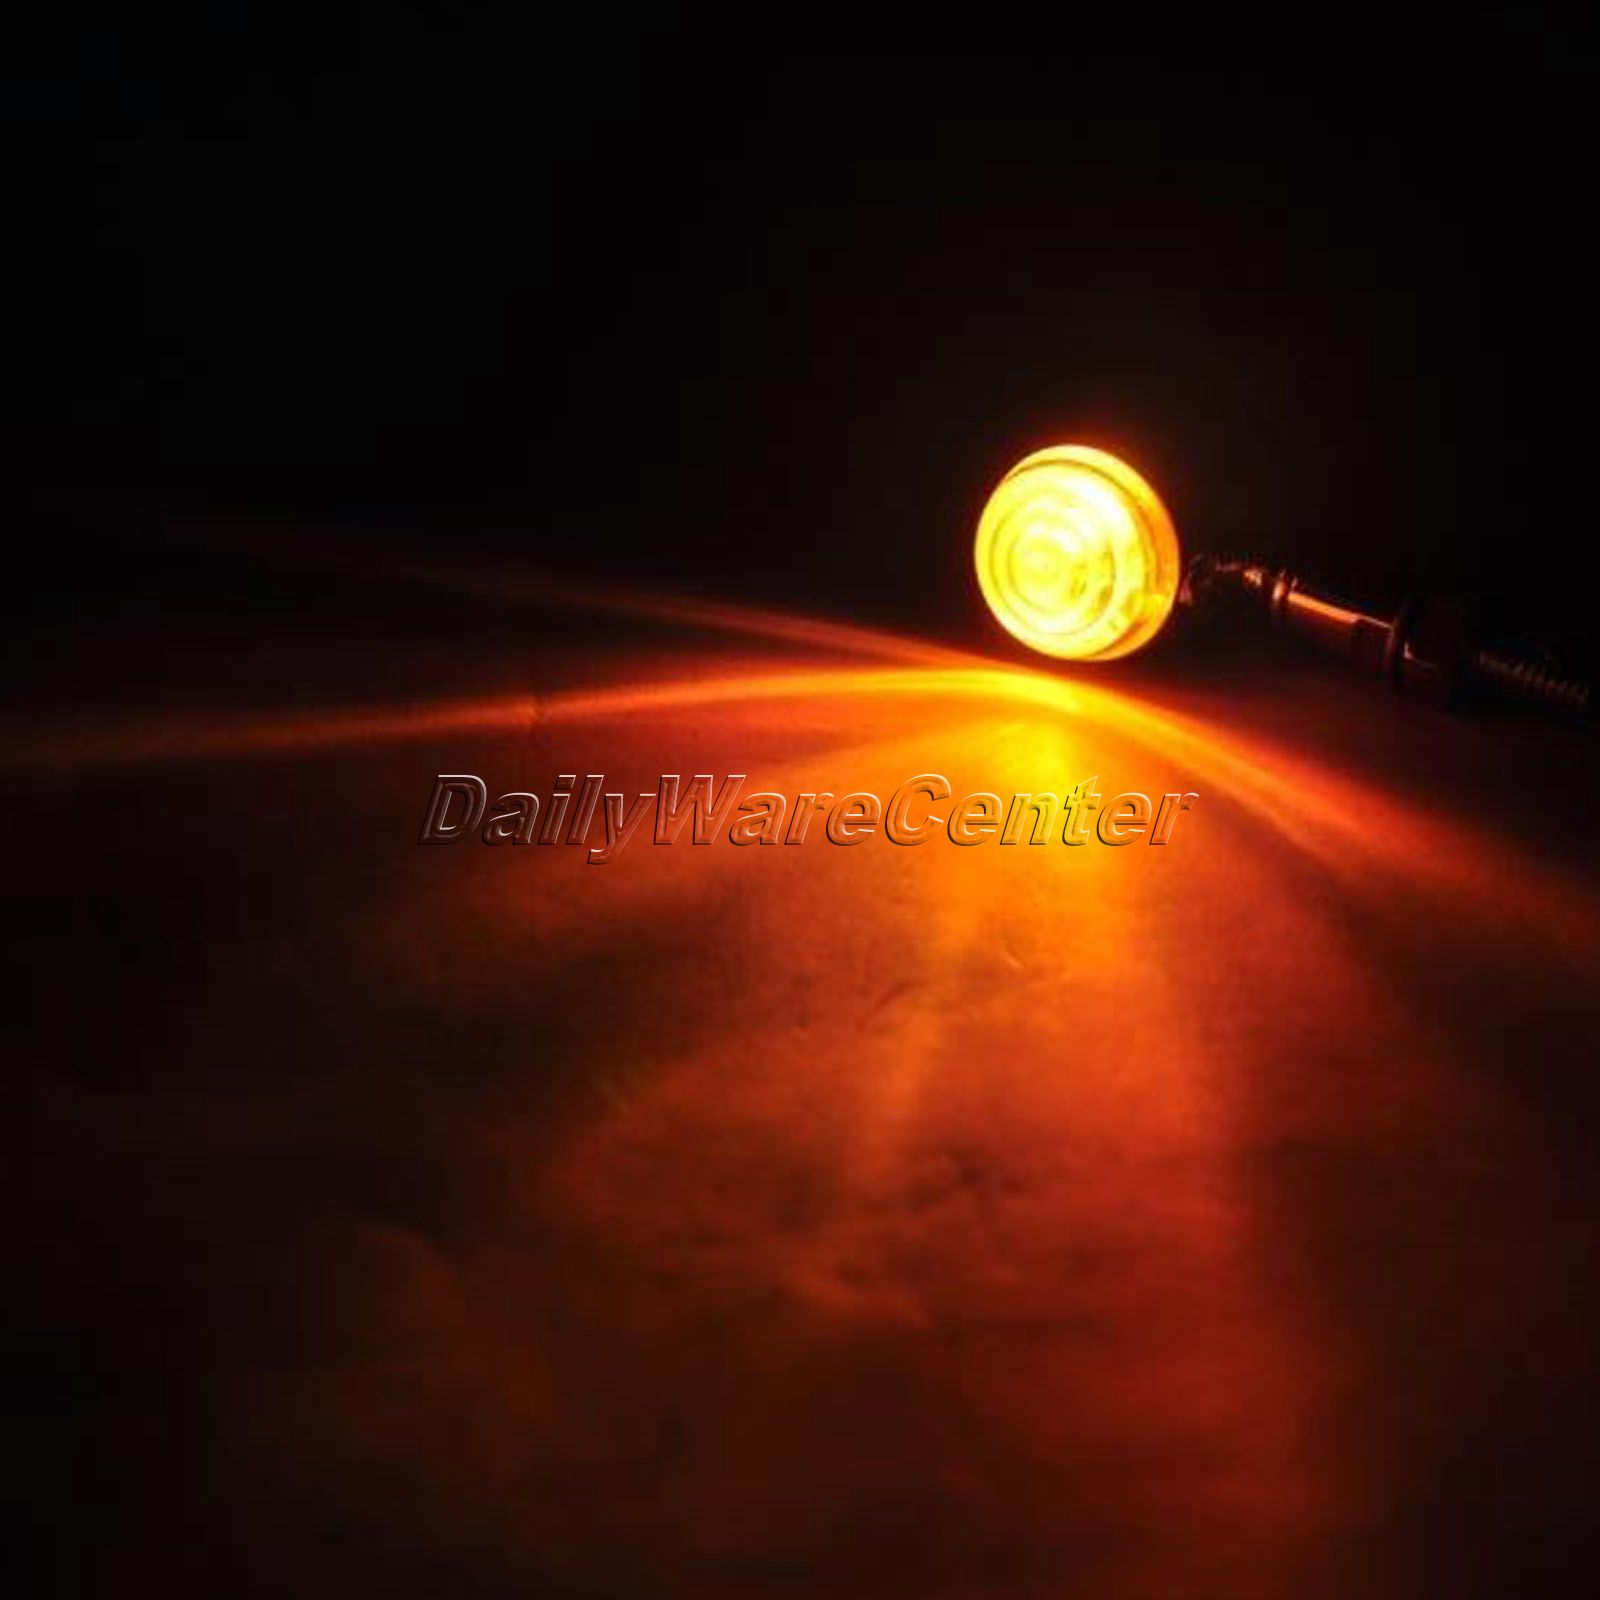 bulb on flashing indicator yamaha blinker round aliexpress yetaha honda motorcycle led group amber item com for turn lights alibaba light lamp signal